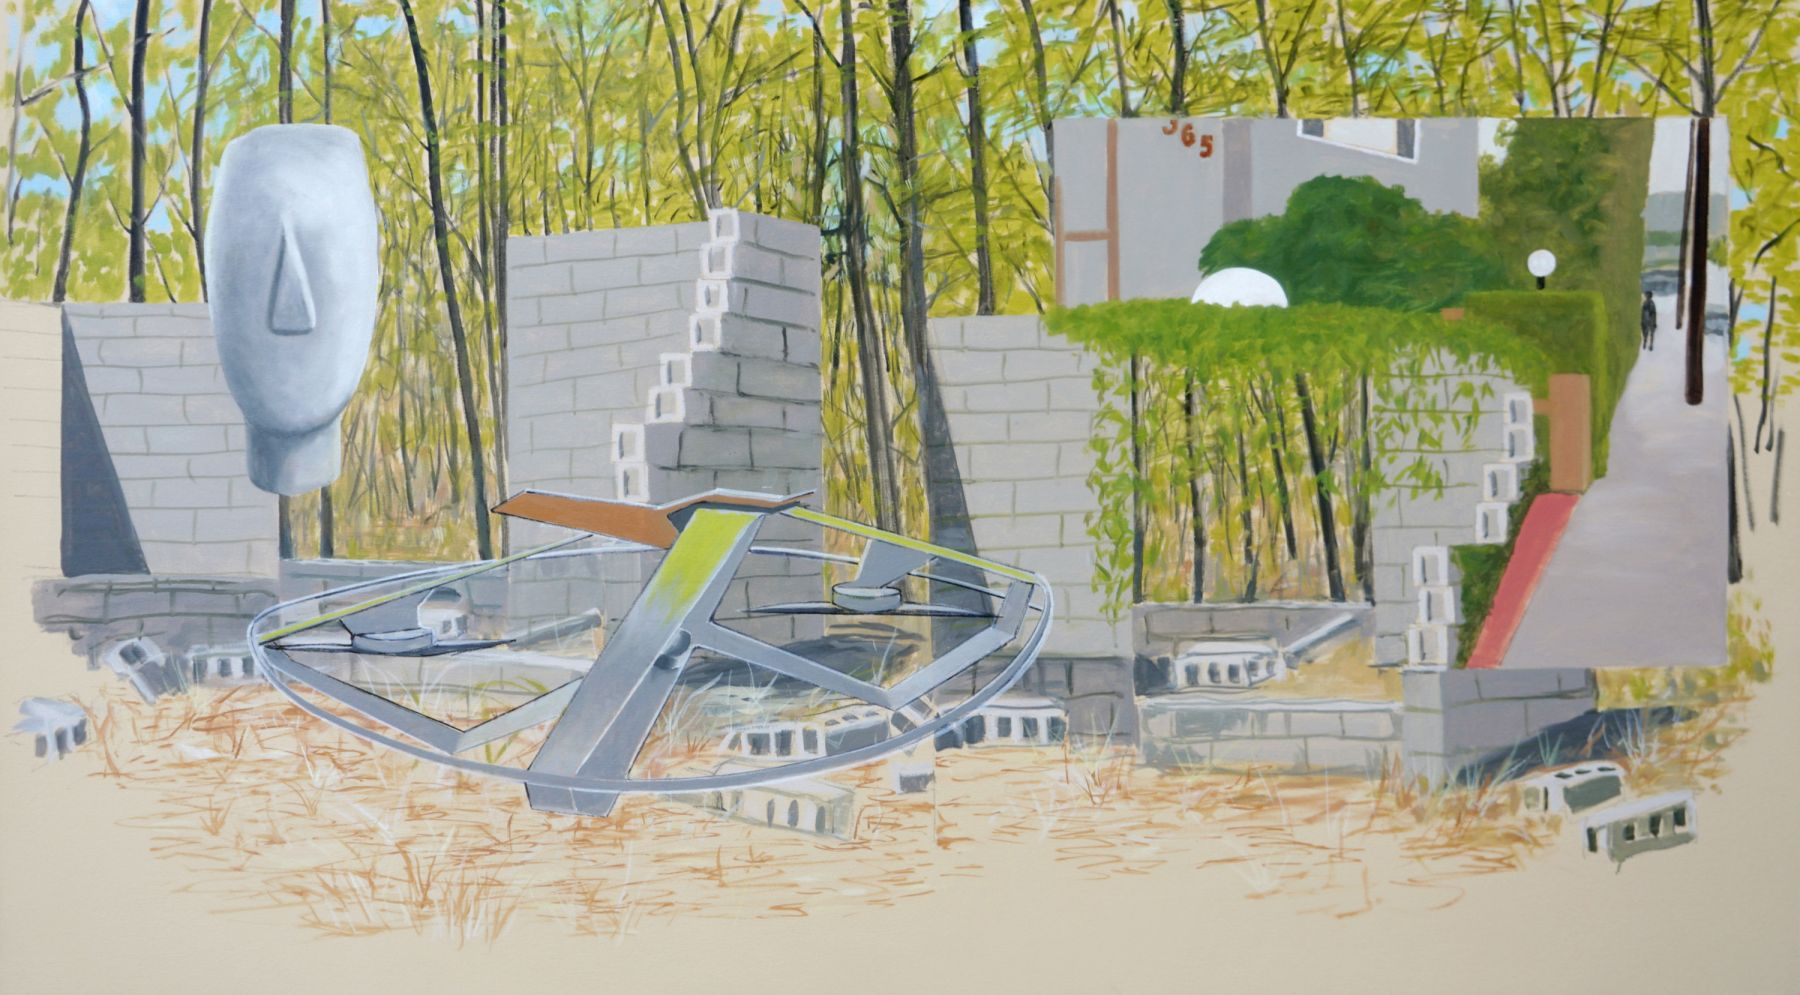 William Leavitt, Pumphouse Ruins, 2020